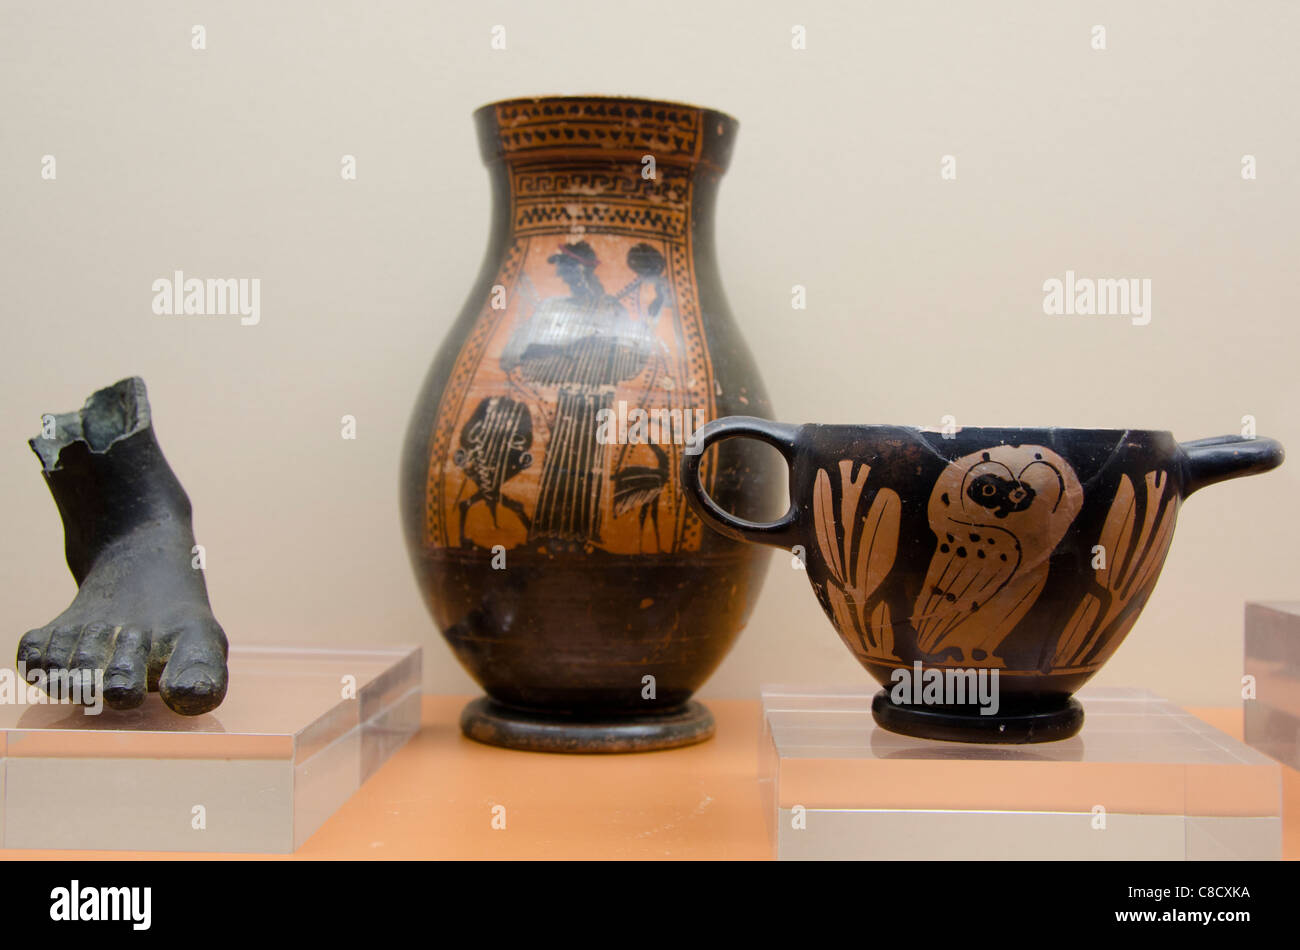 Ukraine, Odessa. Archaeological Museum, interior display. 6th-4th century BC, bronze foot from statue, Greek pottery. - Stock Image